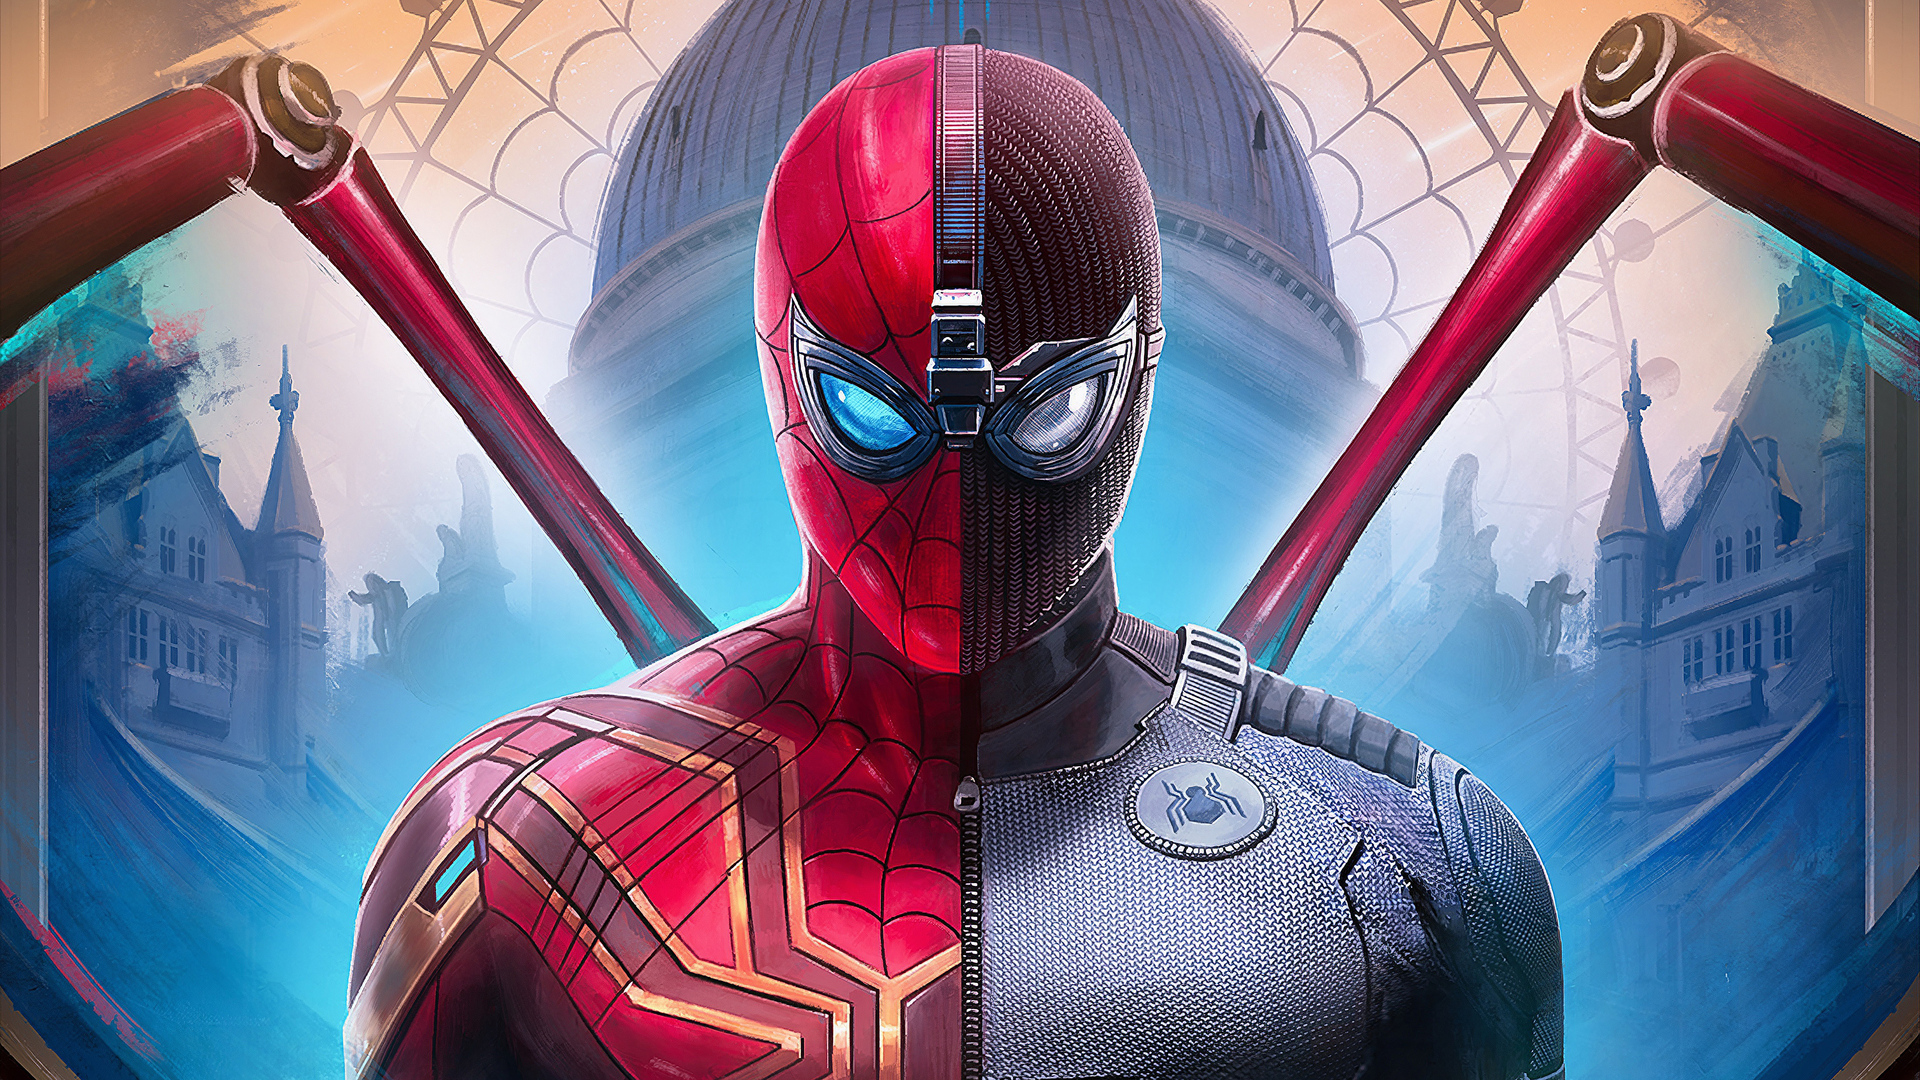 1920x1080 Spiderman Far From Home Suit Laptop Full Hd 1080p